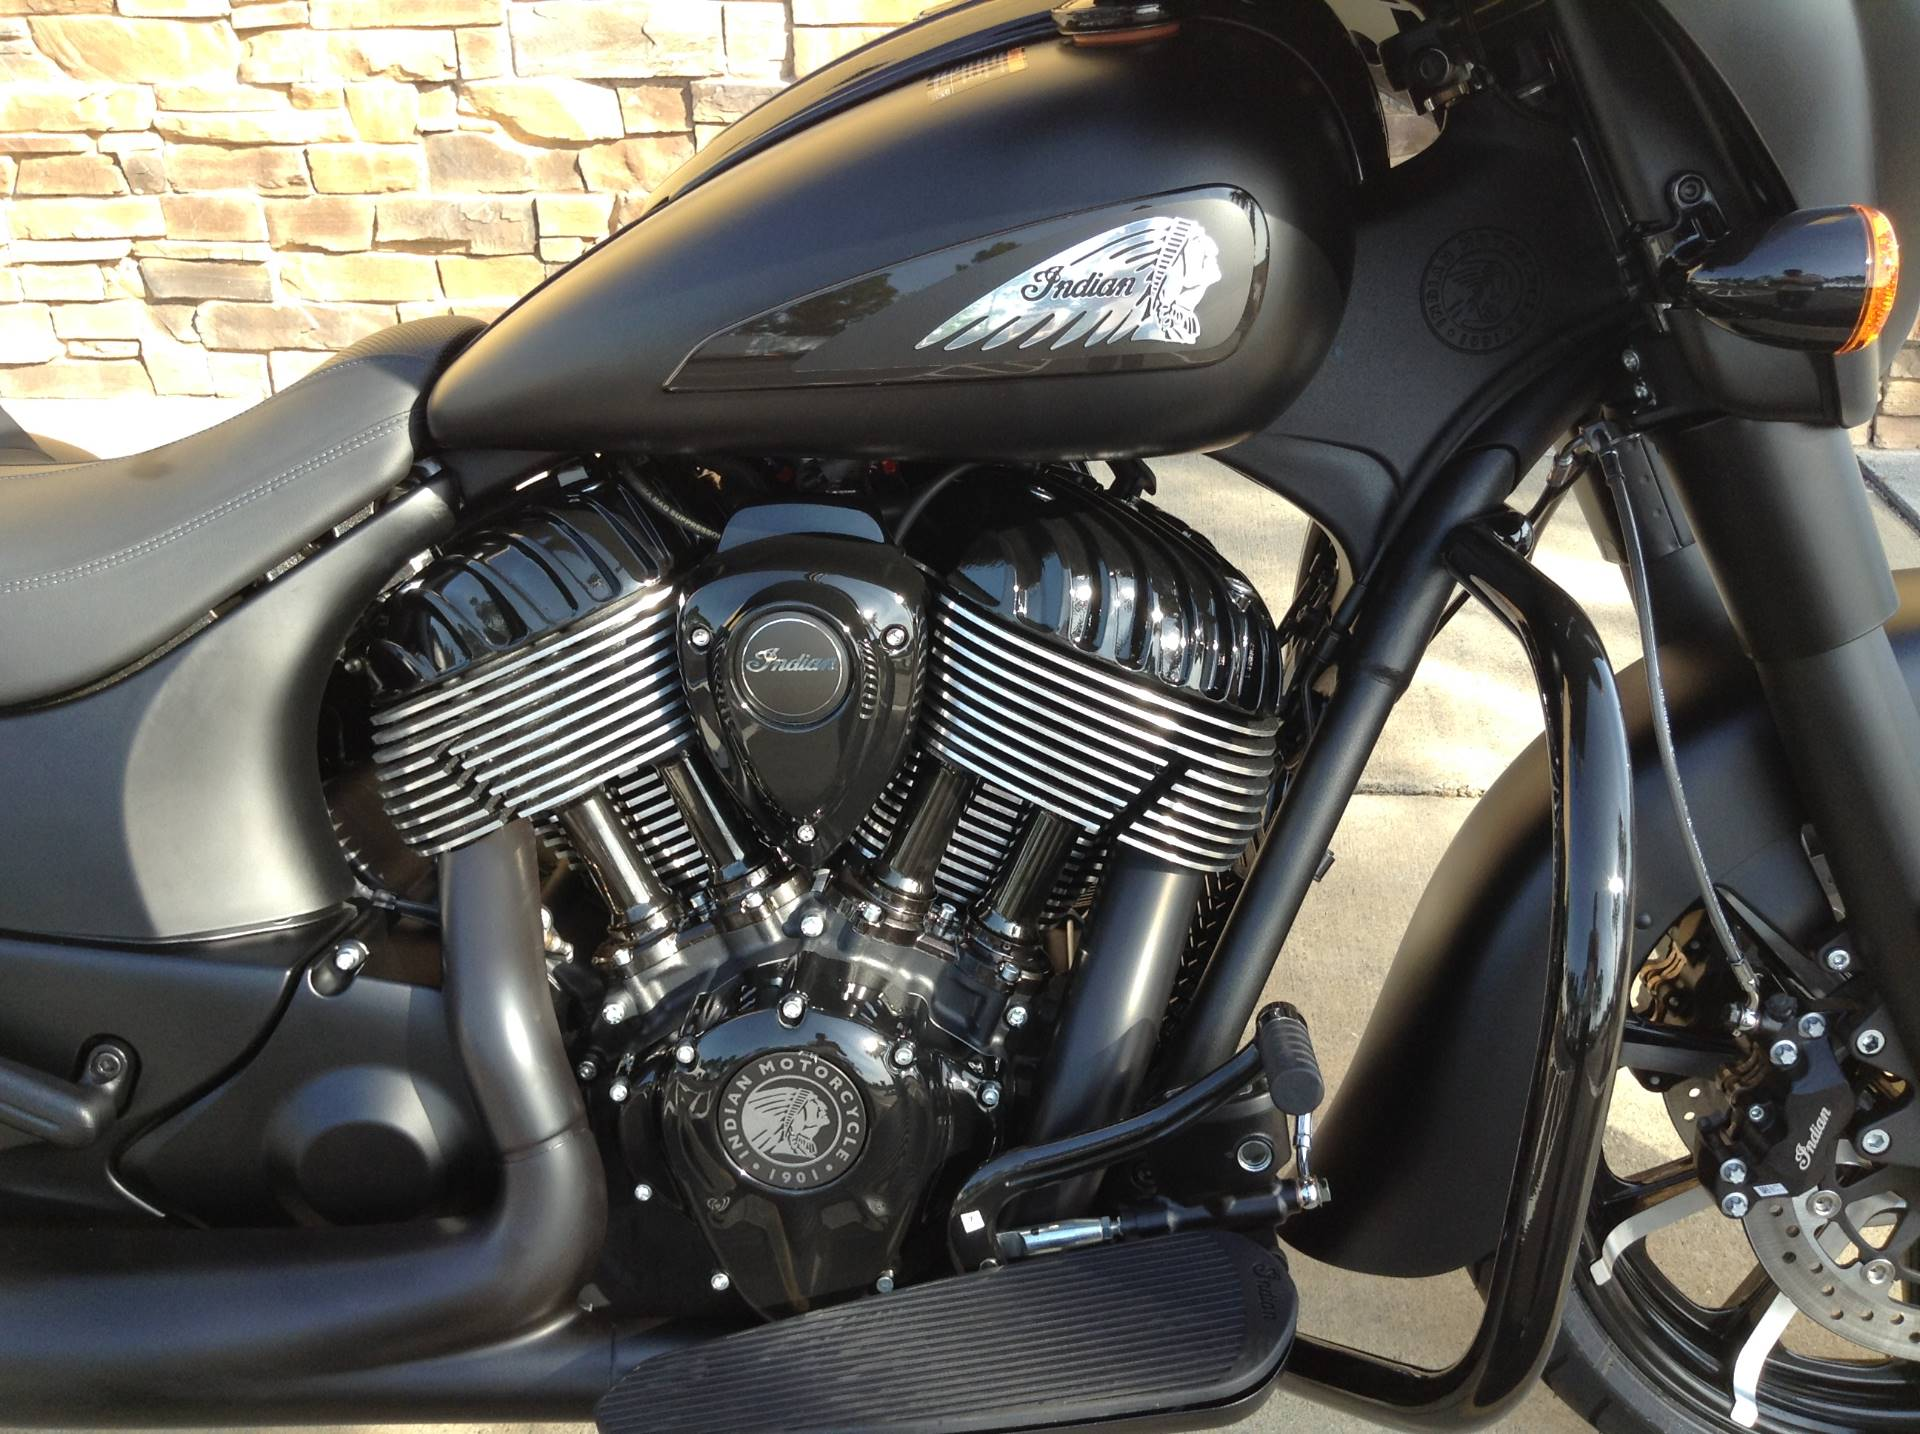 2019 Indian Chieftain Darkhorse in Panama City Beach, Florida - Photo 9